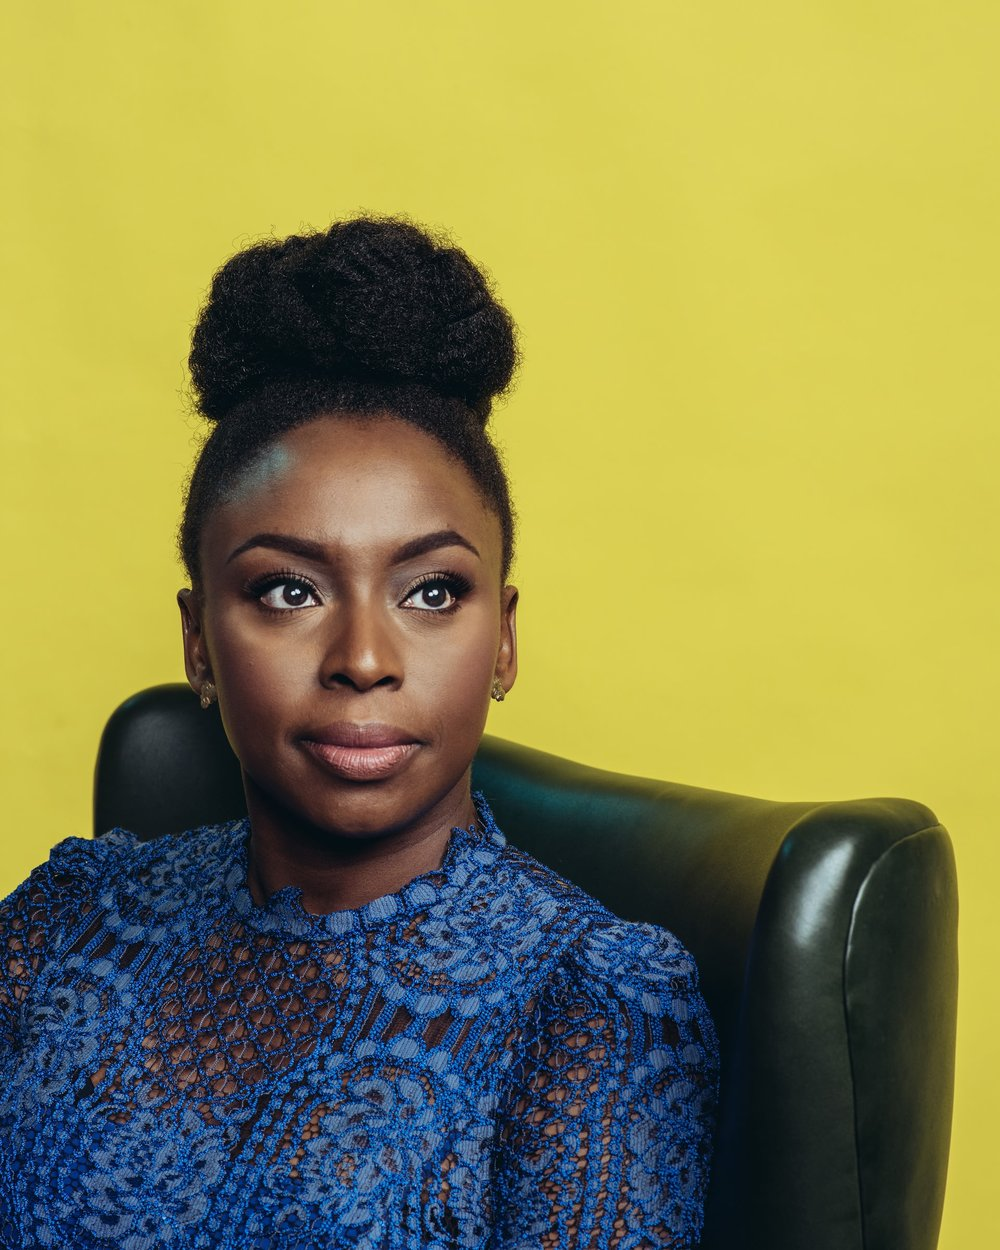 Chimamanda Ngozi Adichie - Best selling and critically acclaimed Nigerian author, MacArthur Genius Grant recipient